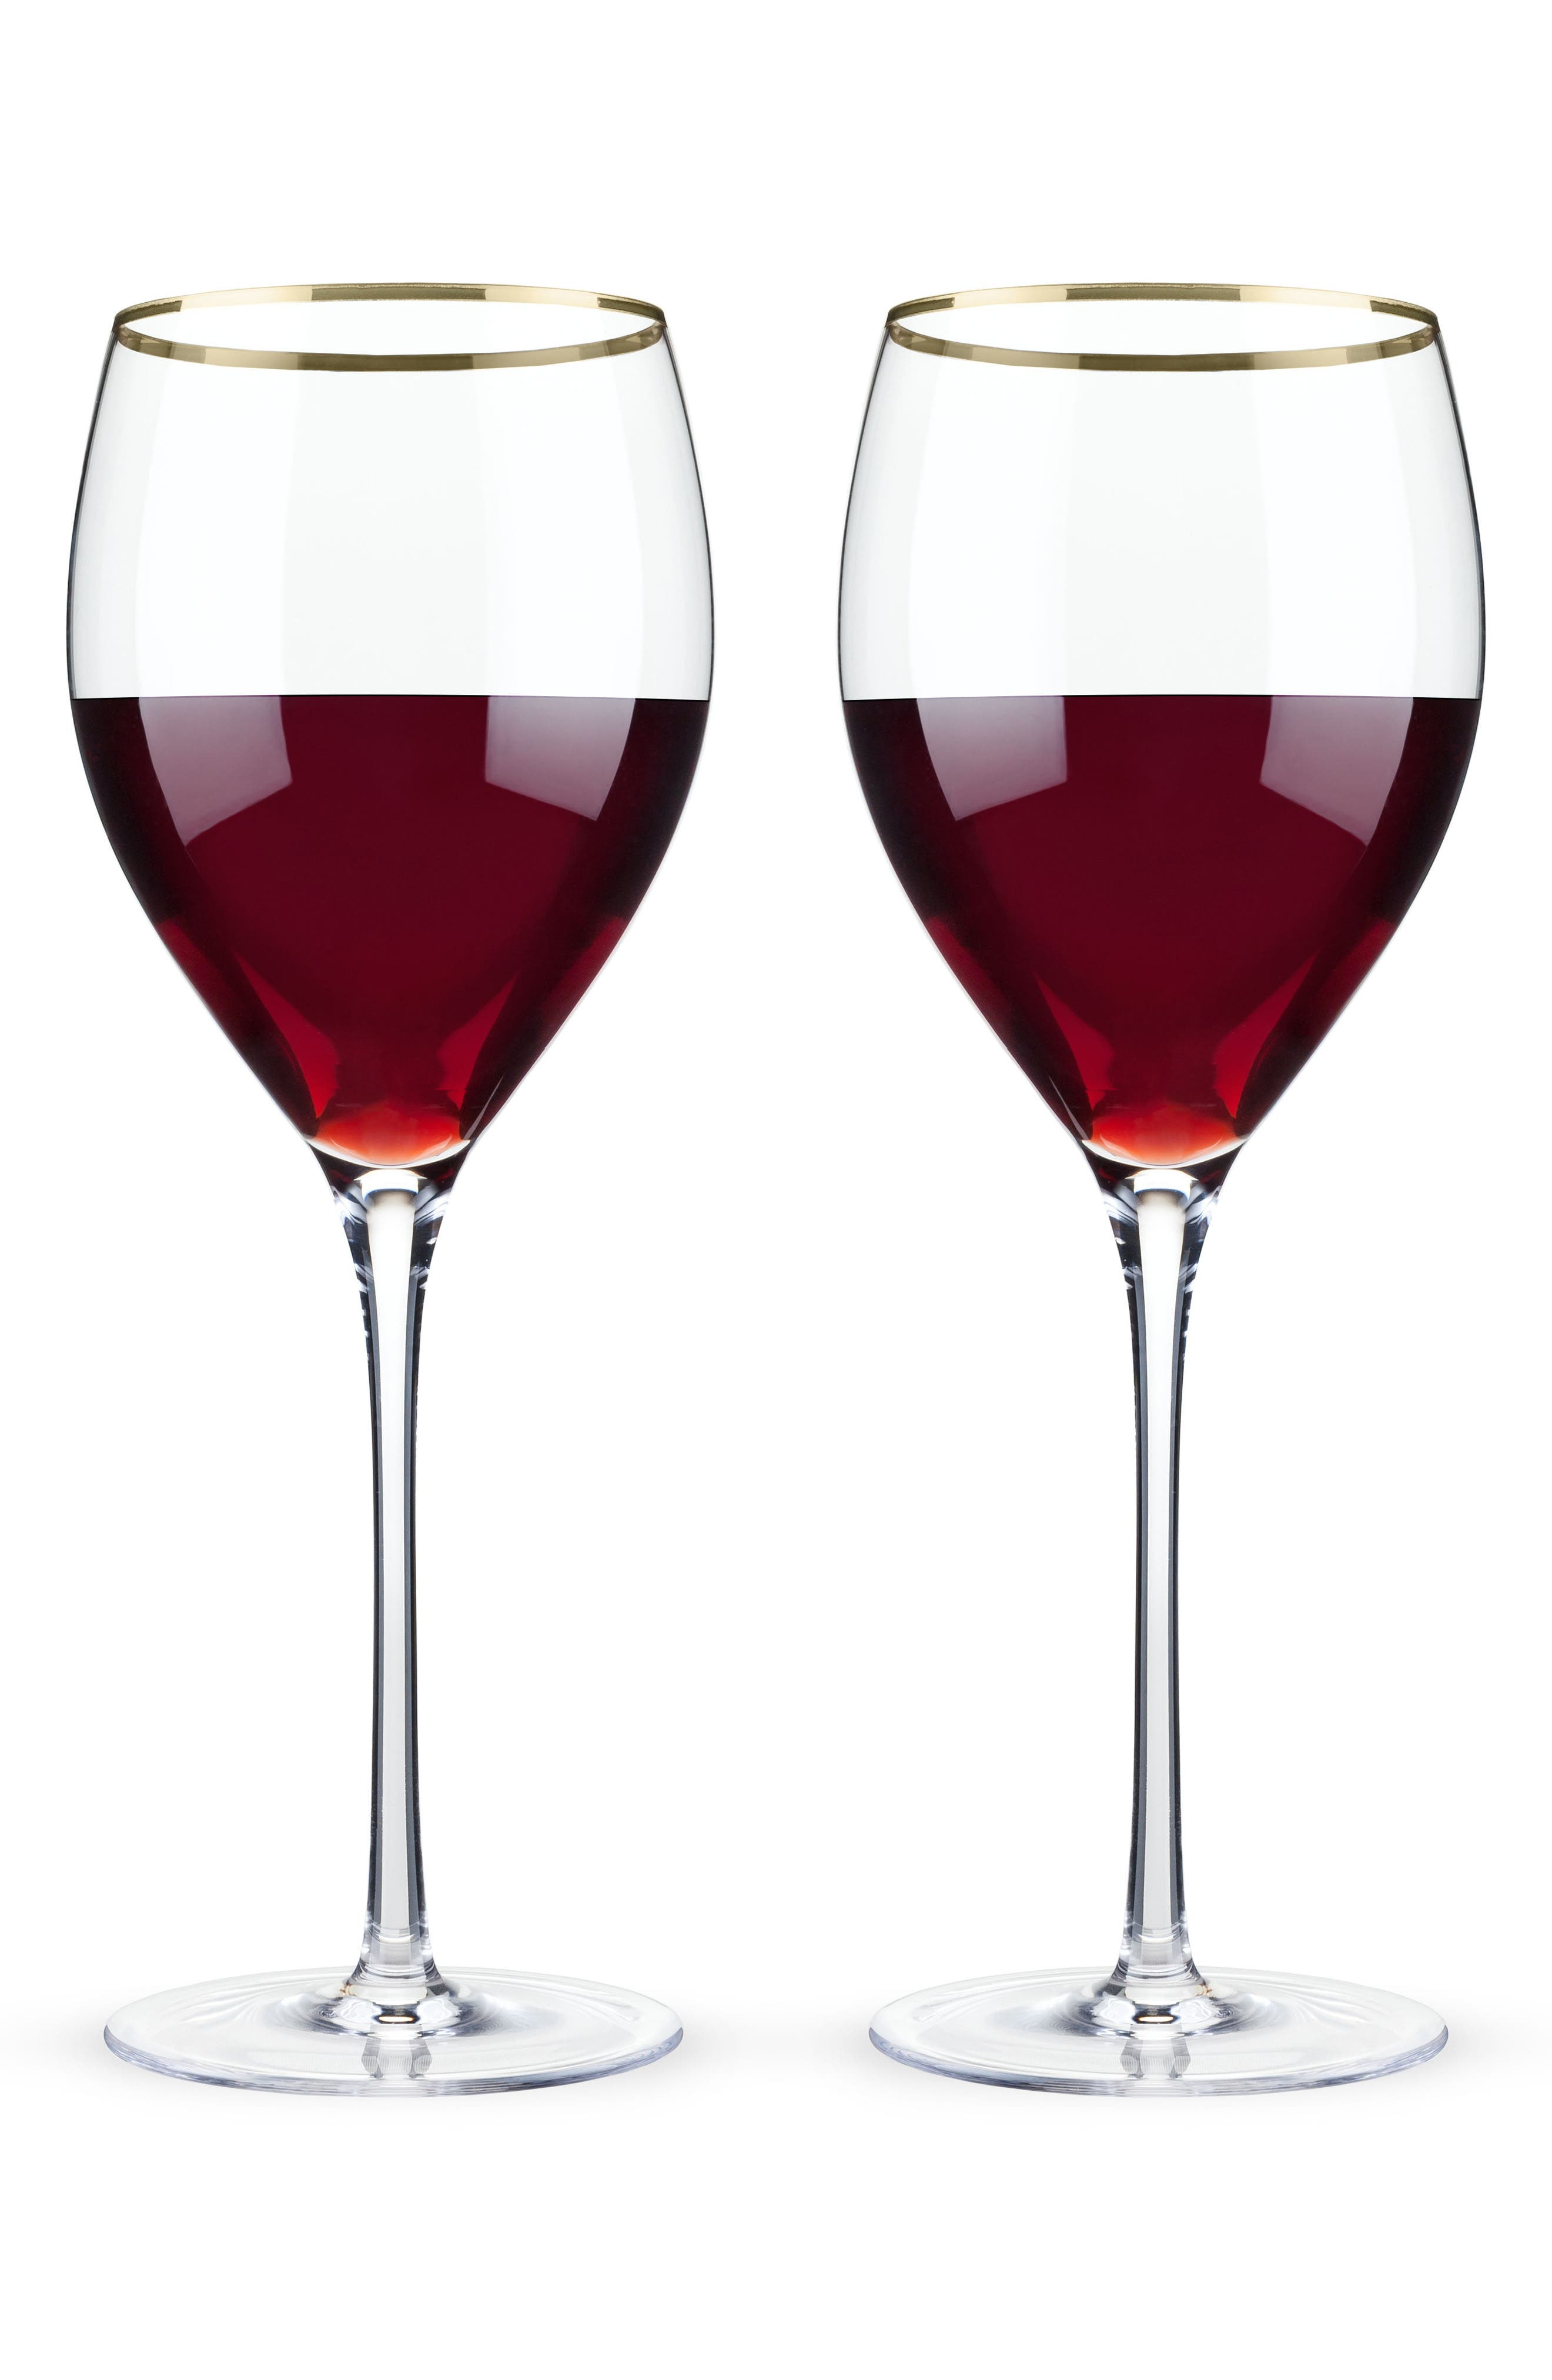 Belmont Set of 2 Gold Rim Wine Glasses,                         Main,                         color, White